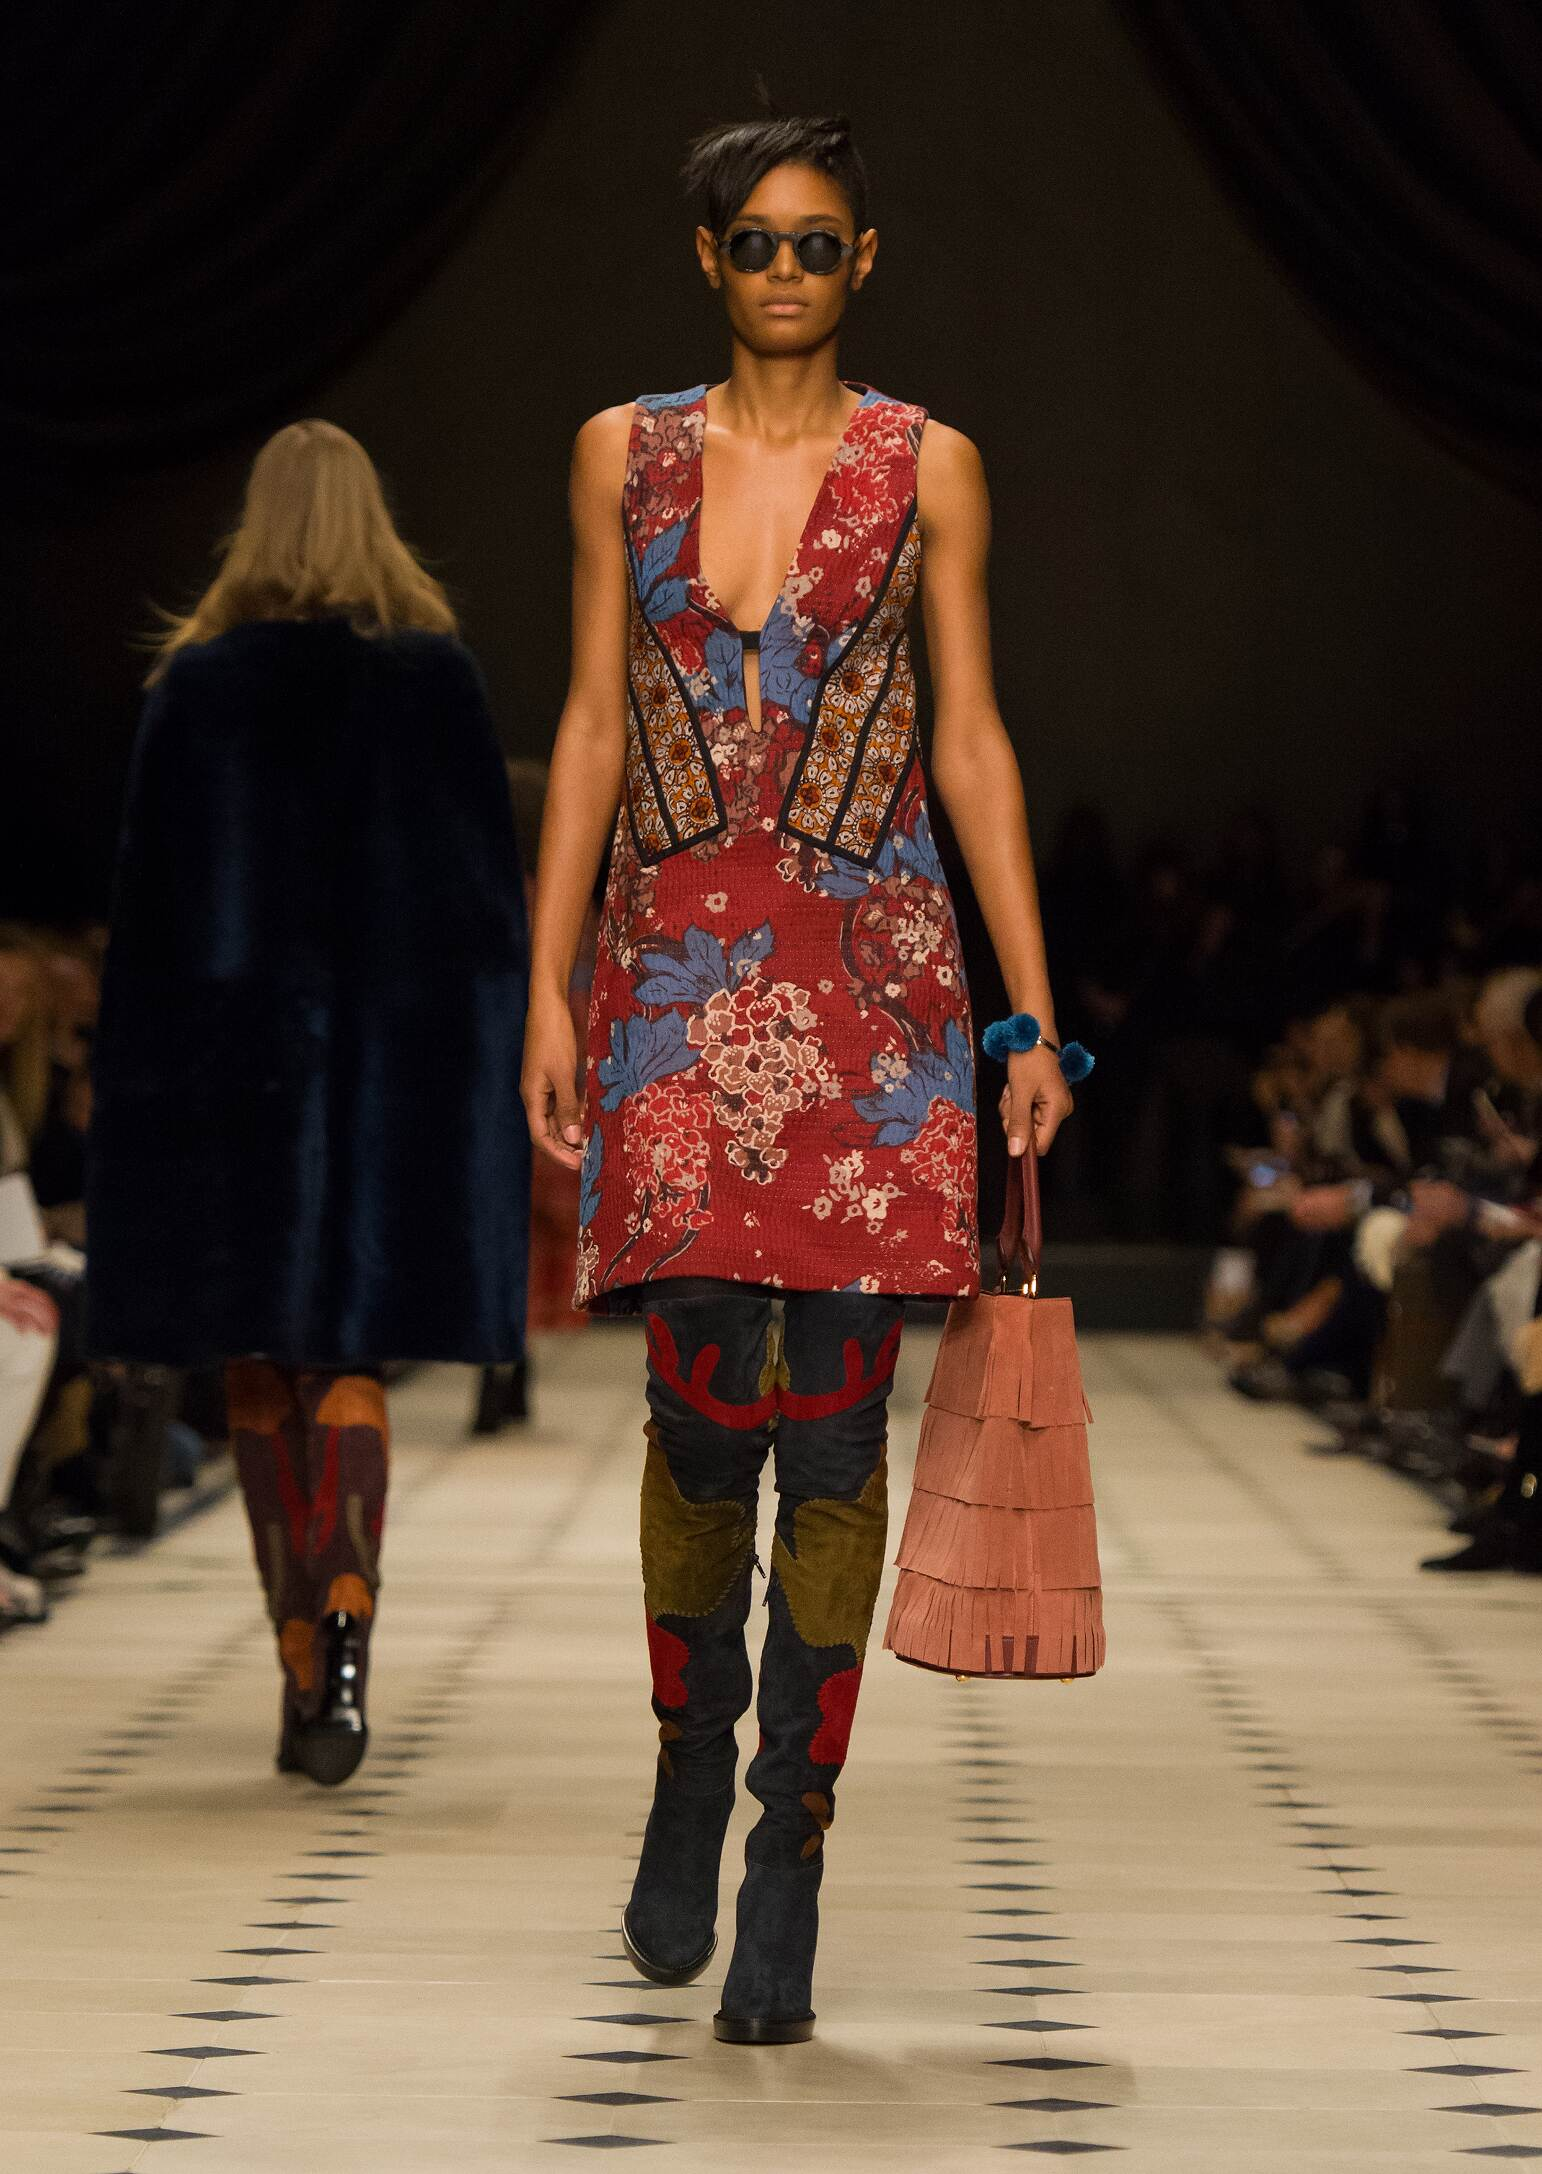 2016 Fall Fashion Woman Burberry Prorsum Collection